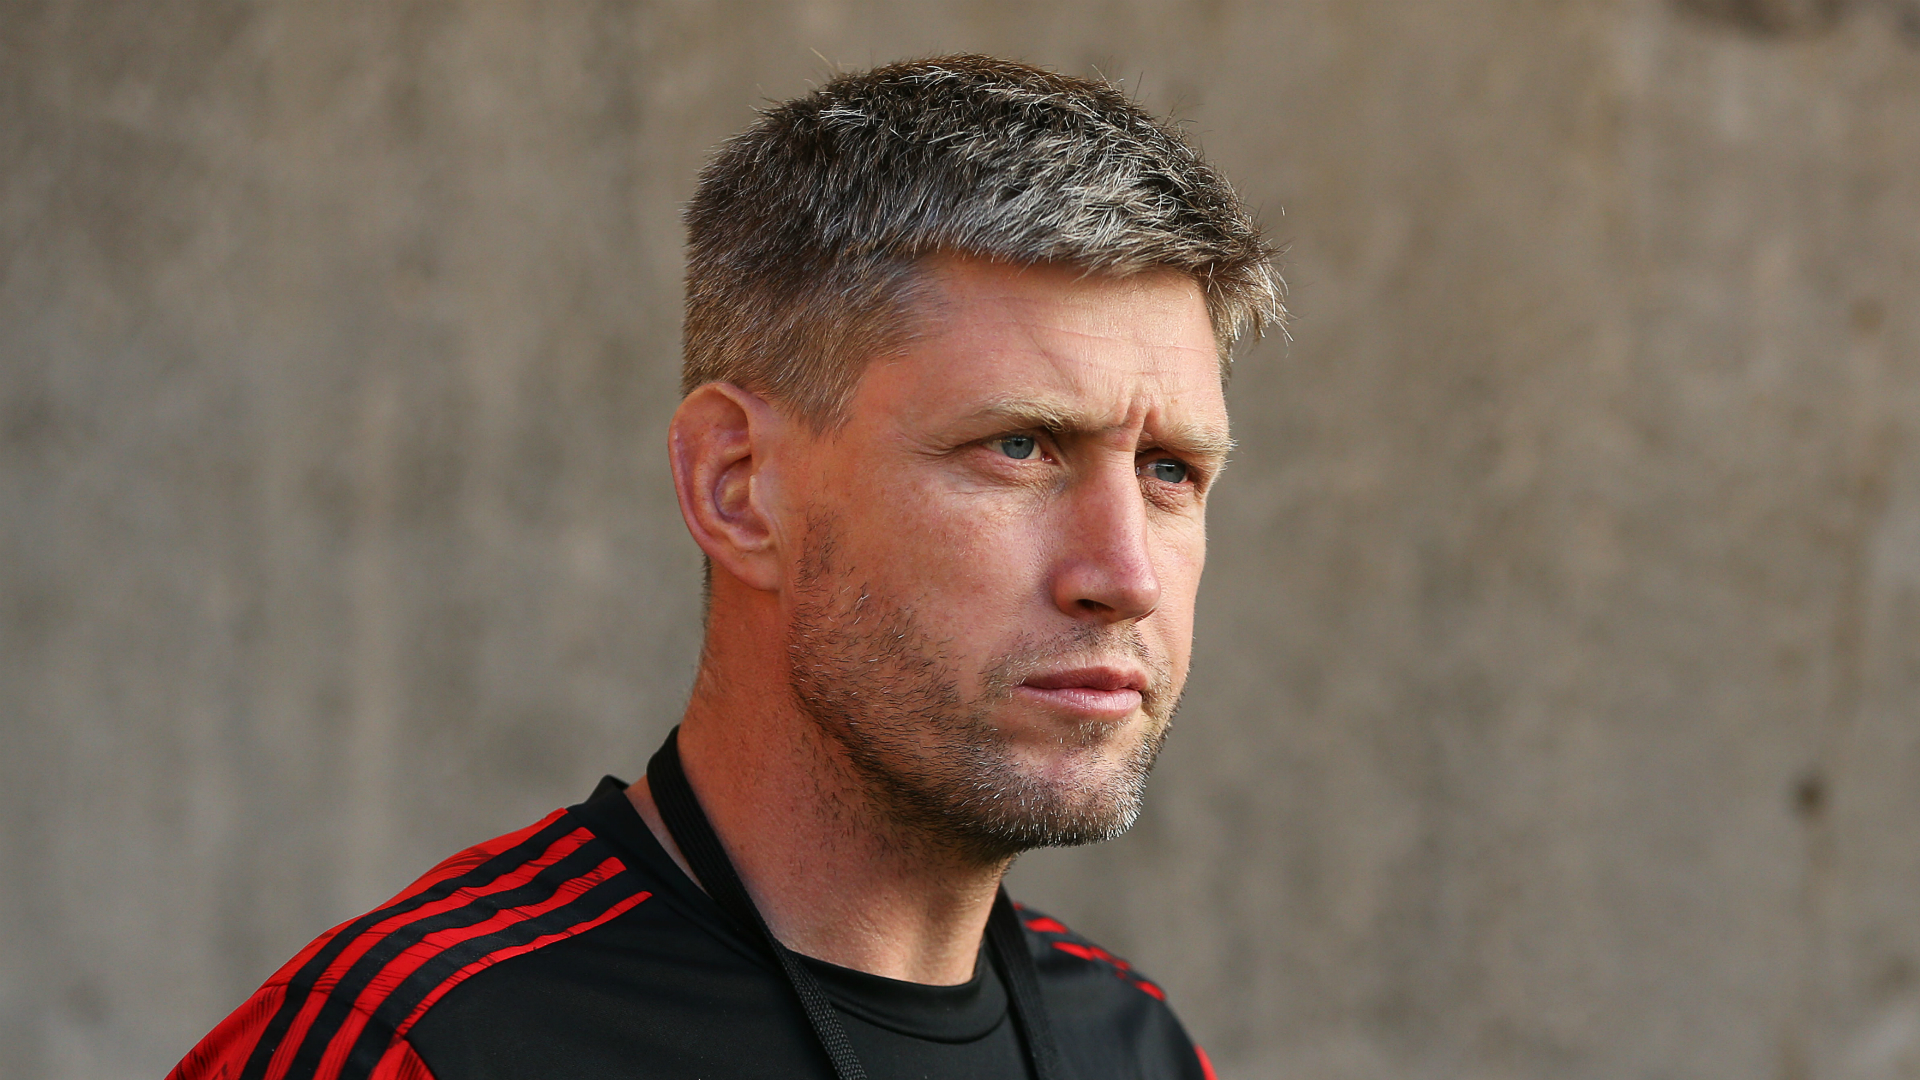 Ronan O'Gara will take the next step in his coaching career with Top 14 side La Rochelle after the Irishman opted to leave the Crusaders.